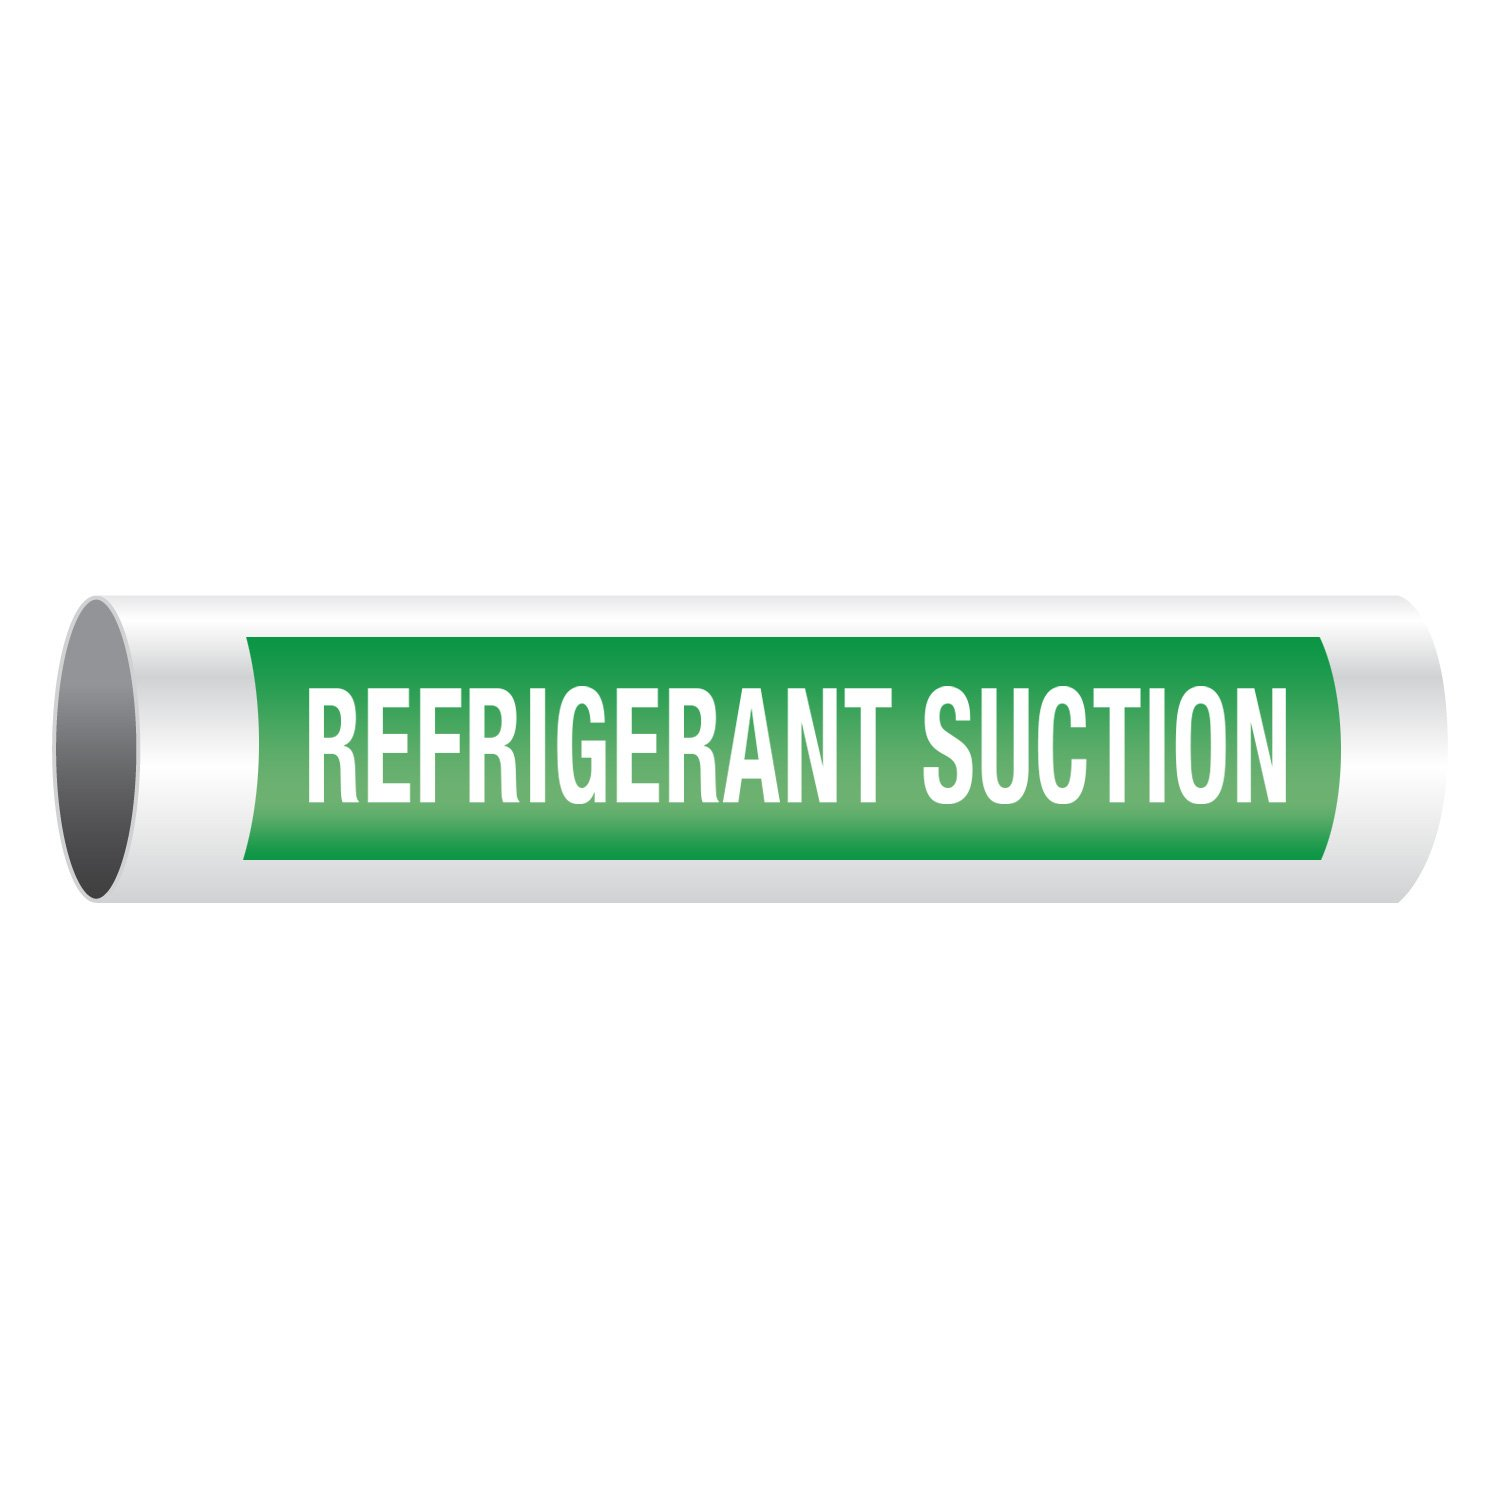 Refrigerant Suction - Opti-Code™ Self-Adhesive Pipe Markers